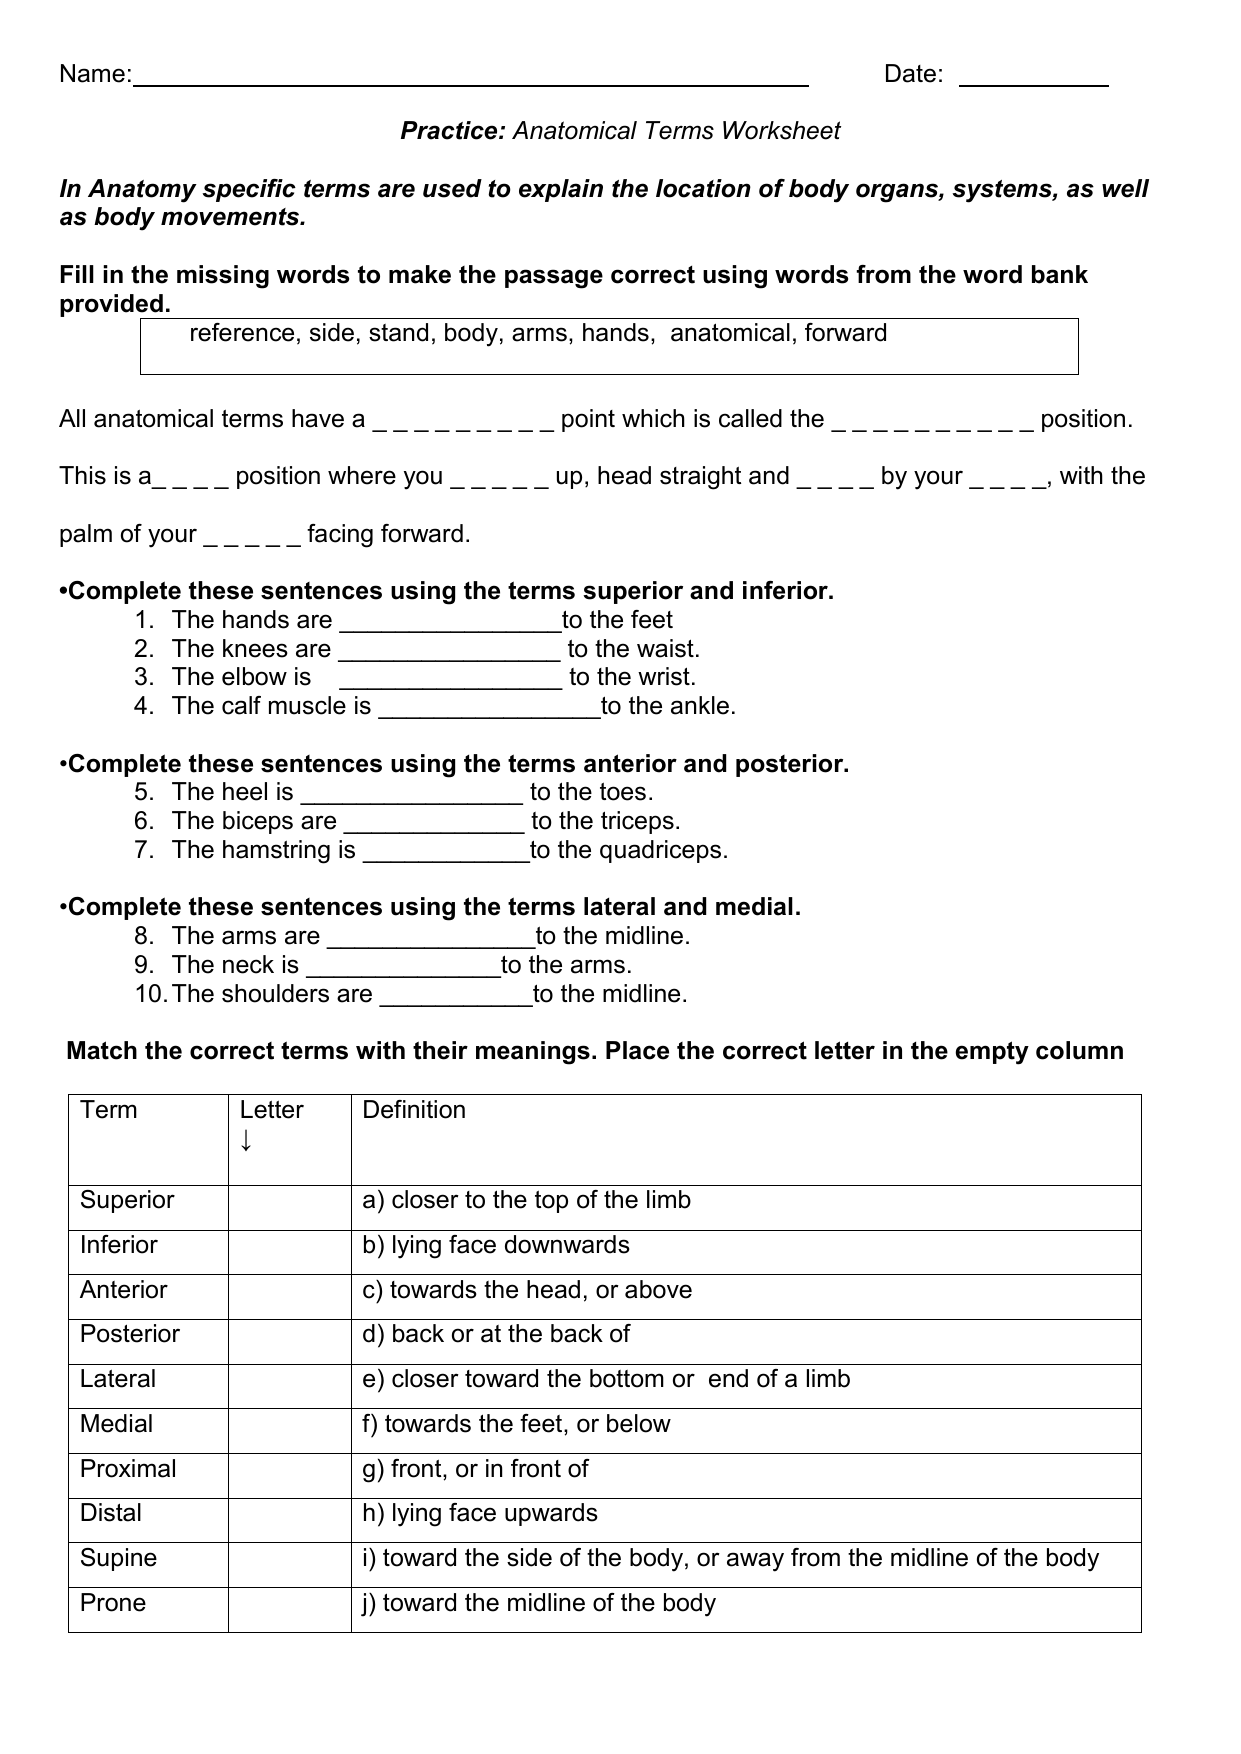 Printables Of Anatomical Directional Terms Worksheet